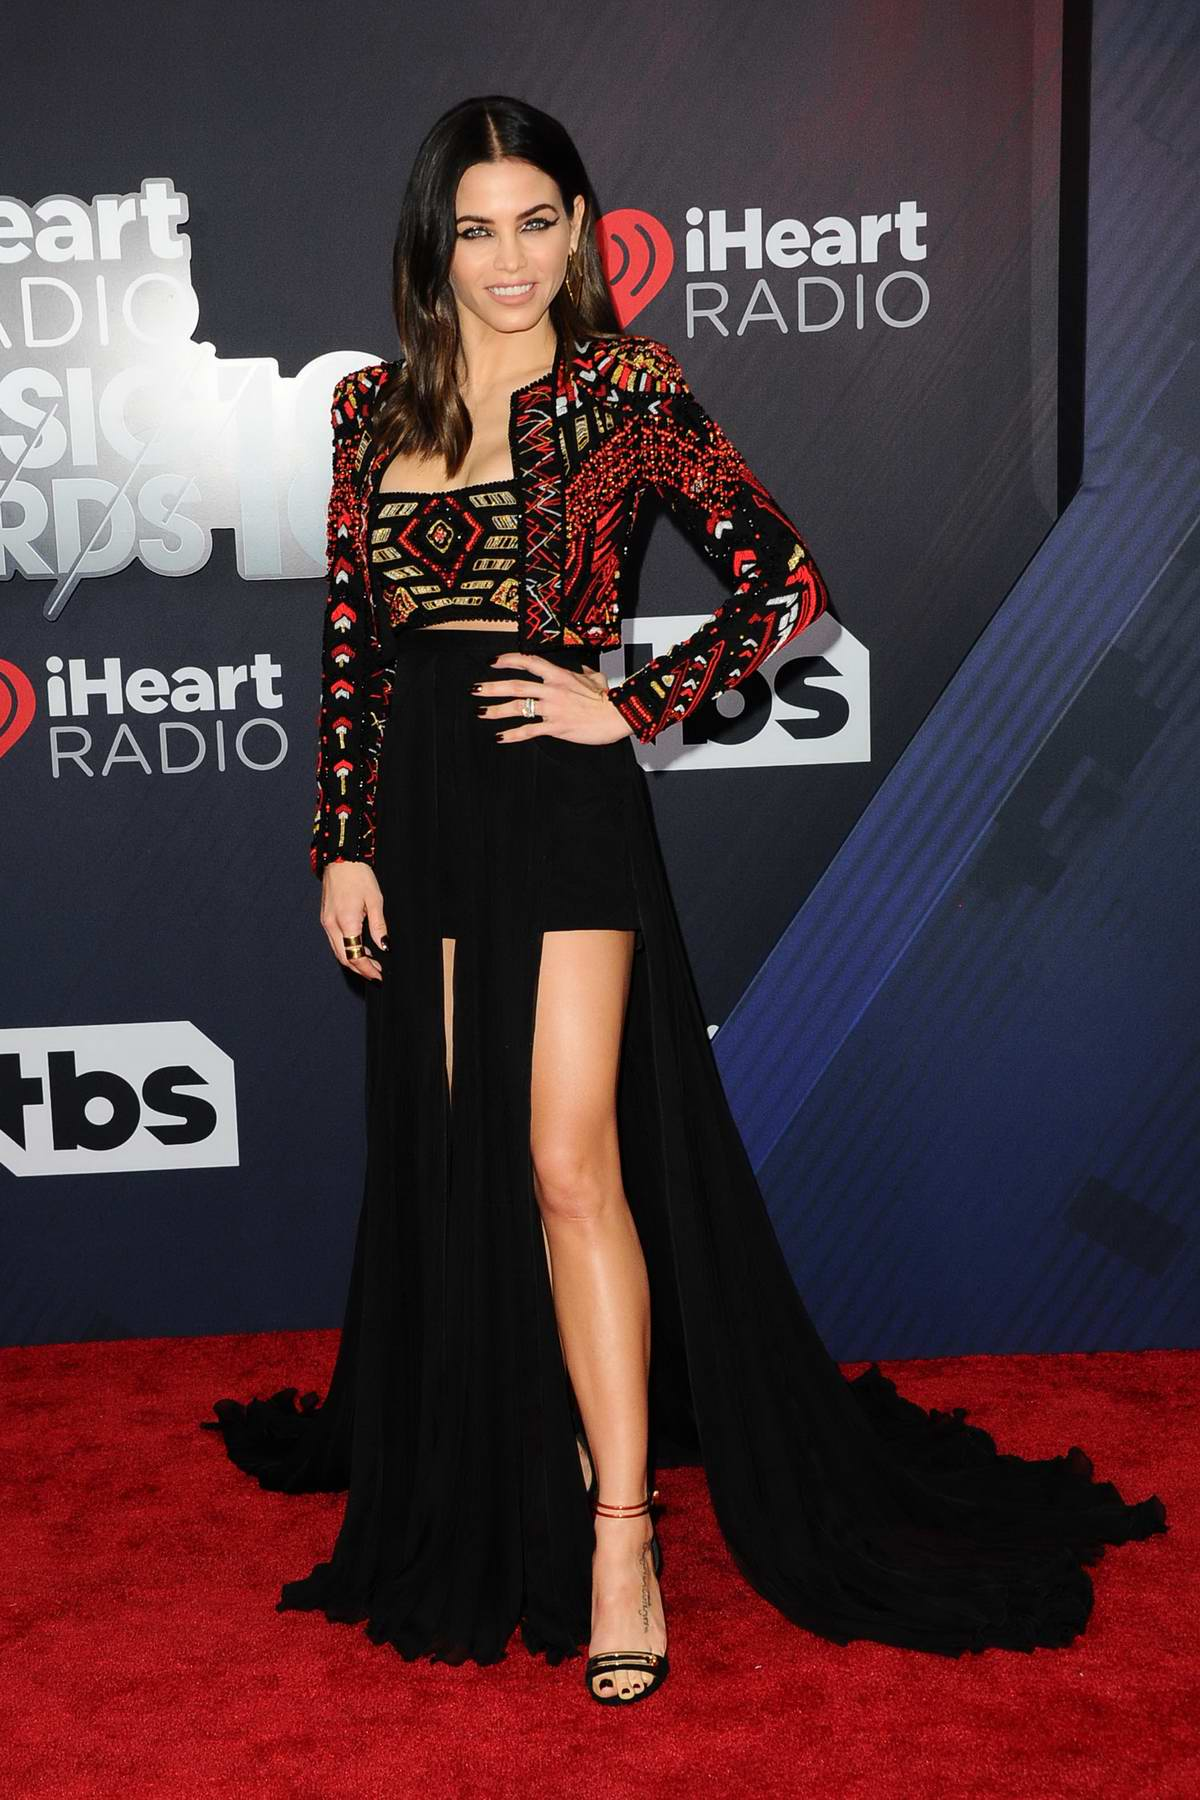 Jenna Dewan Tatum attends the 2018 iHeartRadio Music Awards at The Forum in Inglewood, California